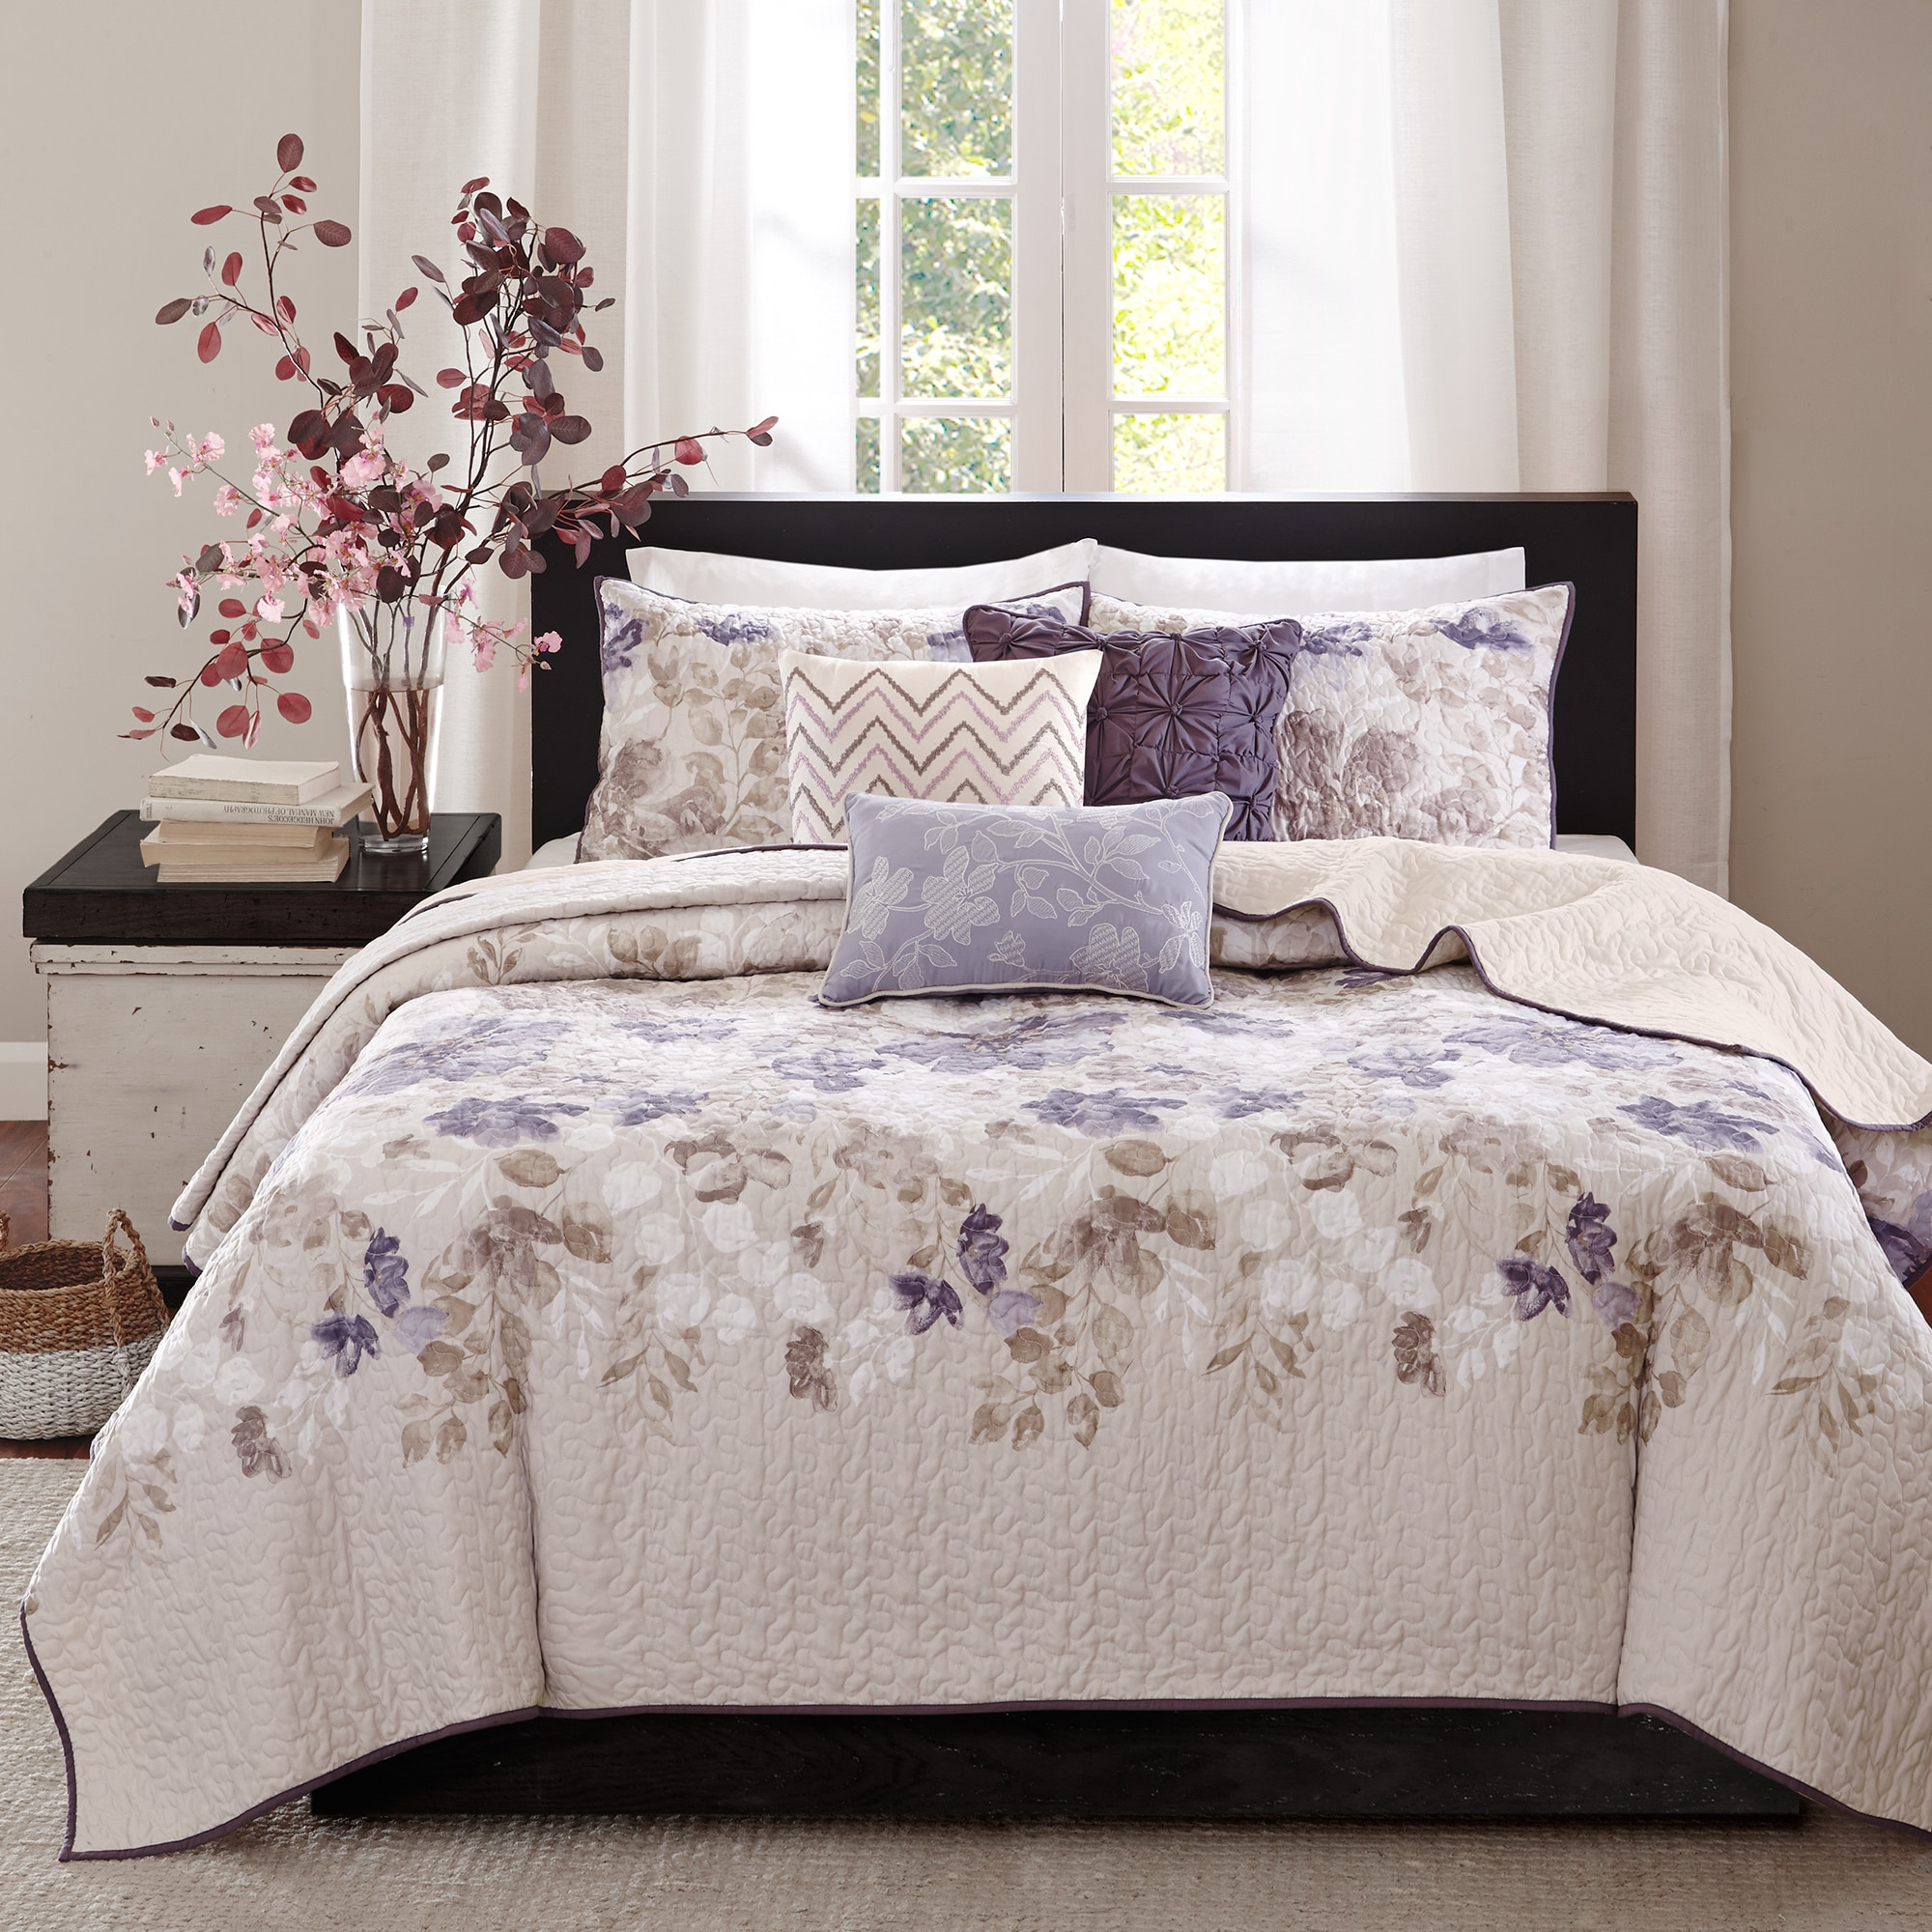 Full Queen Cal King Bed Taupe Beige Floral 3 pc Quilt Set Bedspread Coverlet